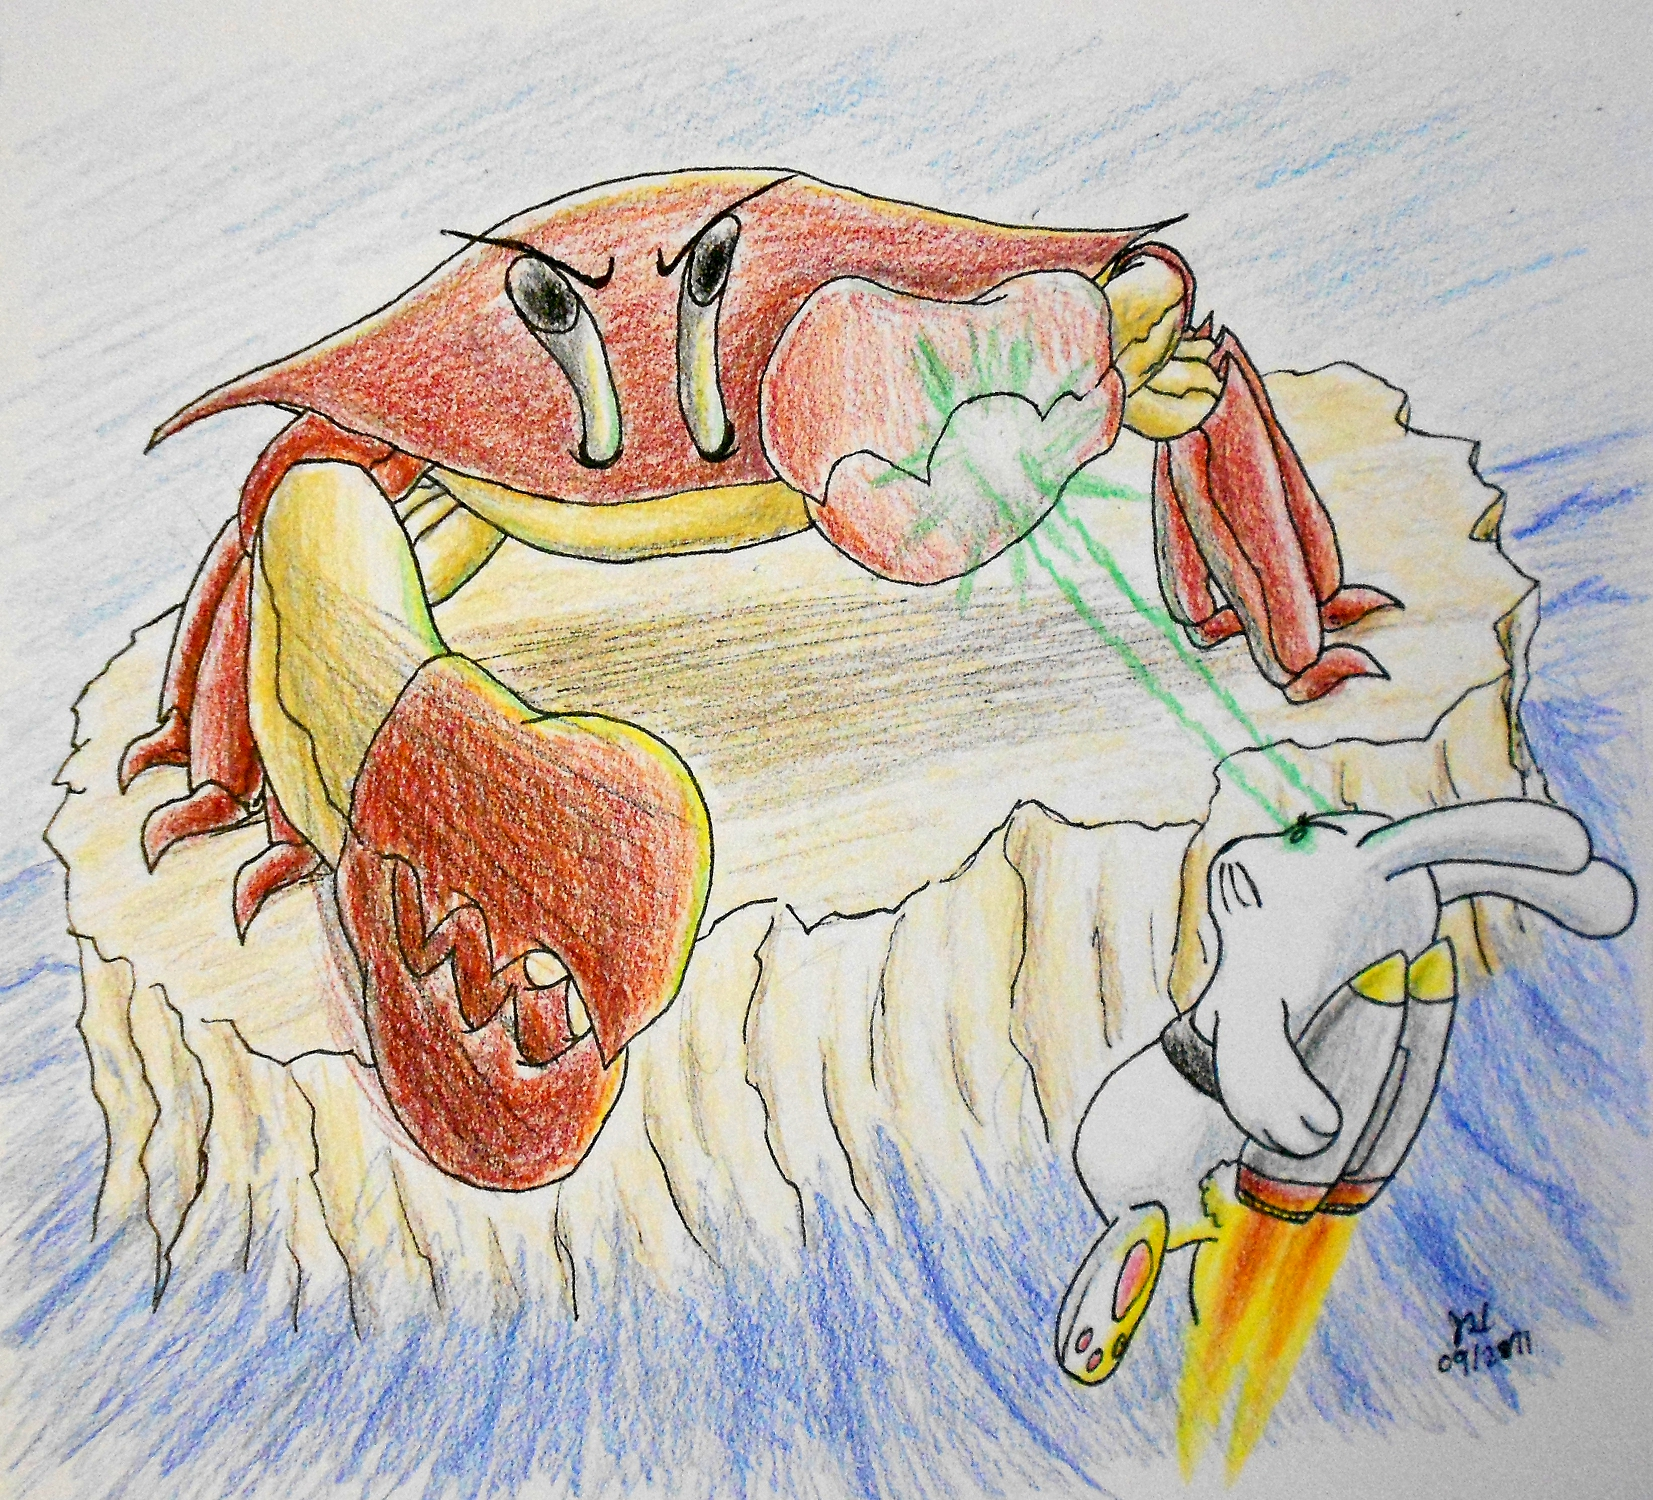 Jetpack Bunny vs. Giant Crab